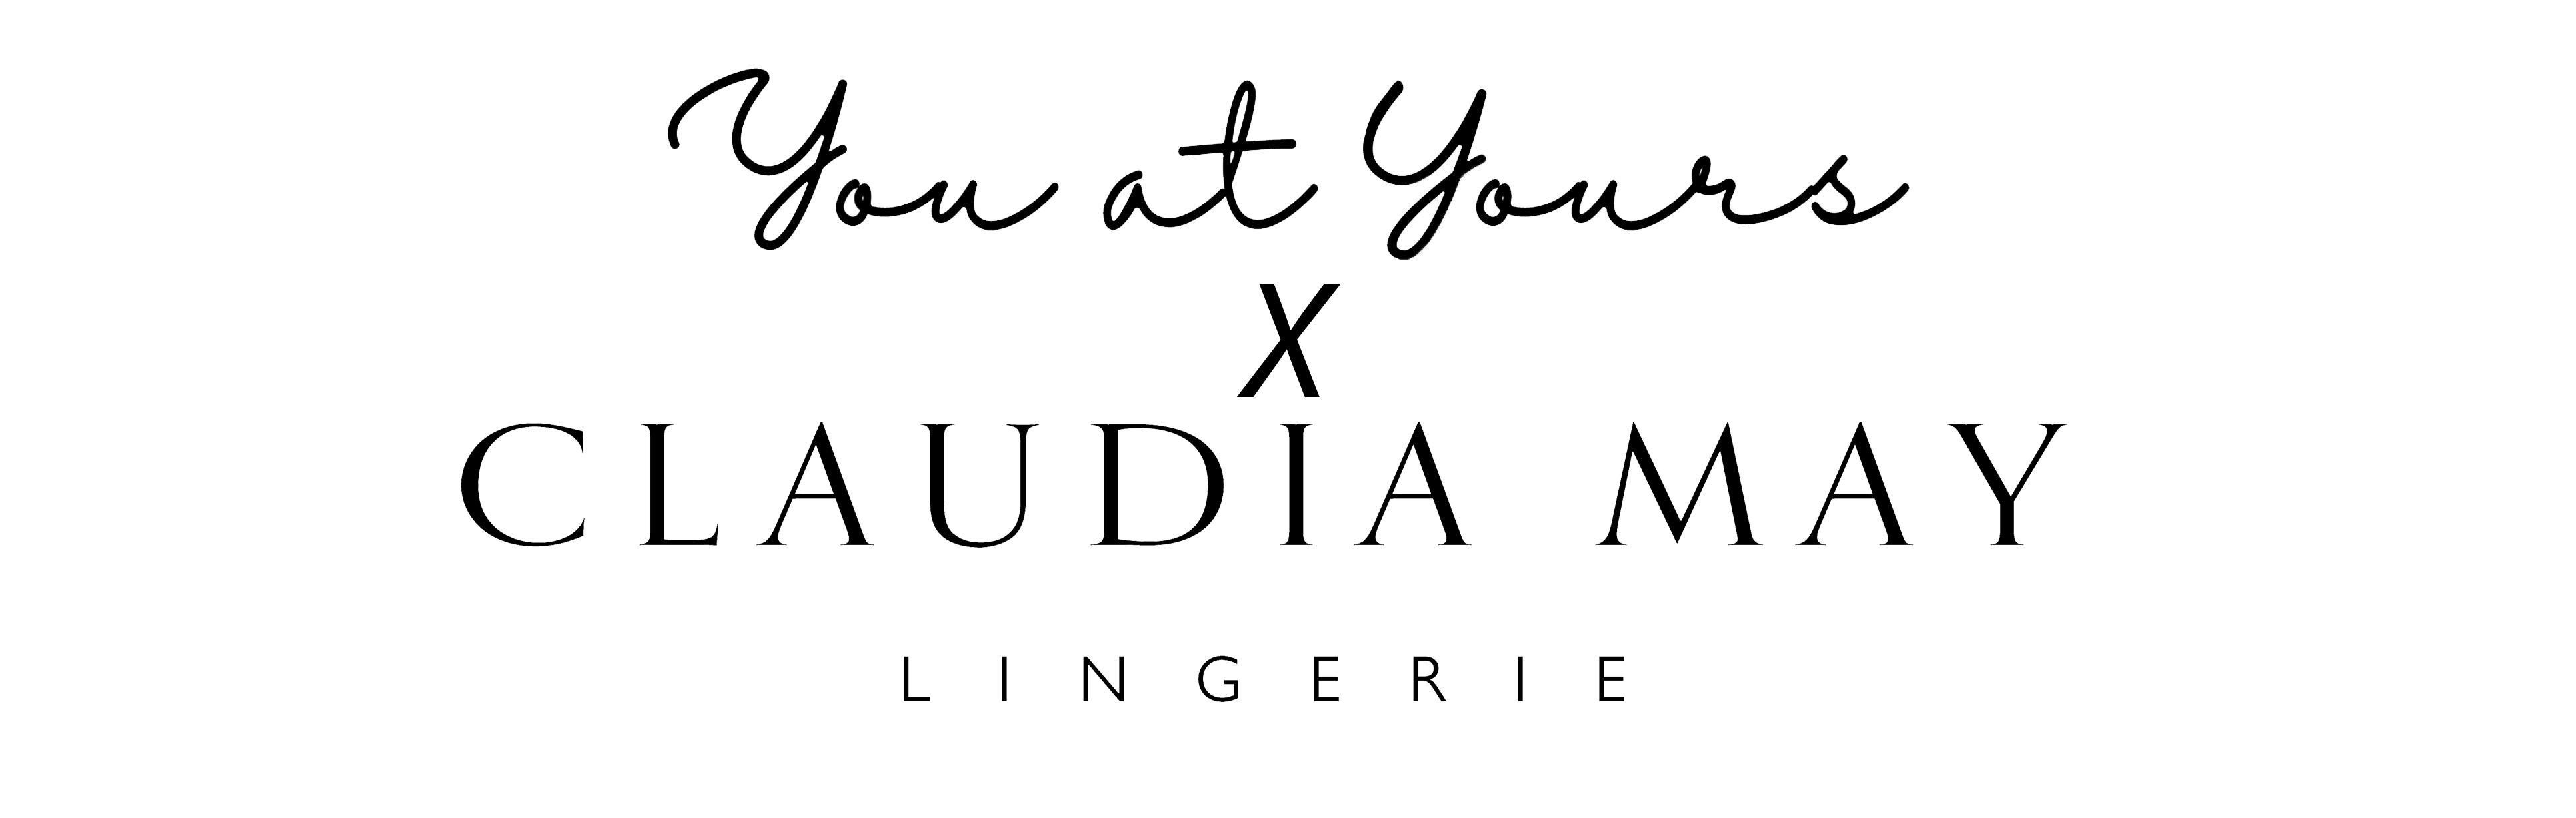 Claudia May x You at Yours collab logo